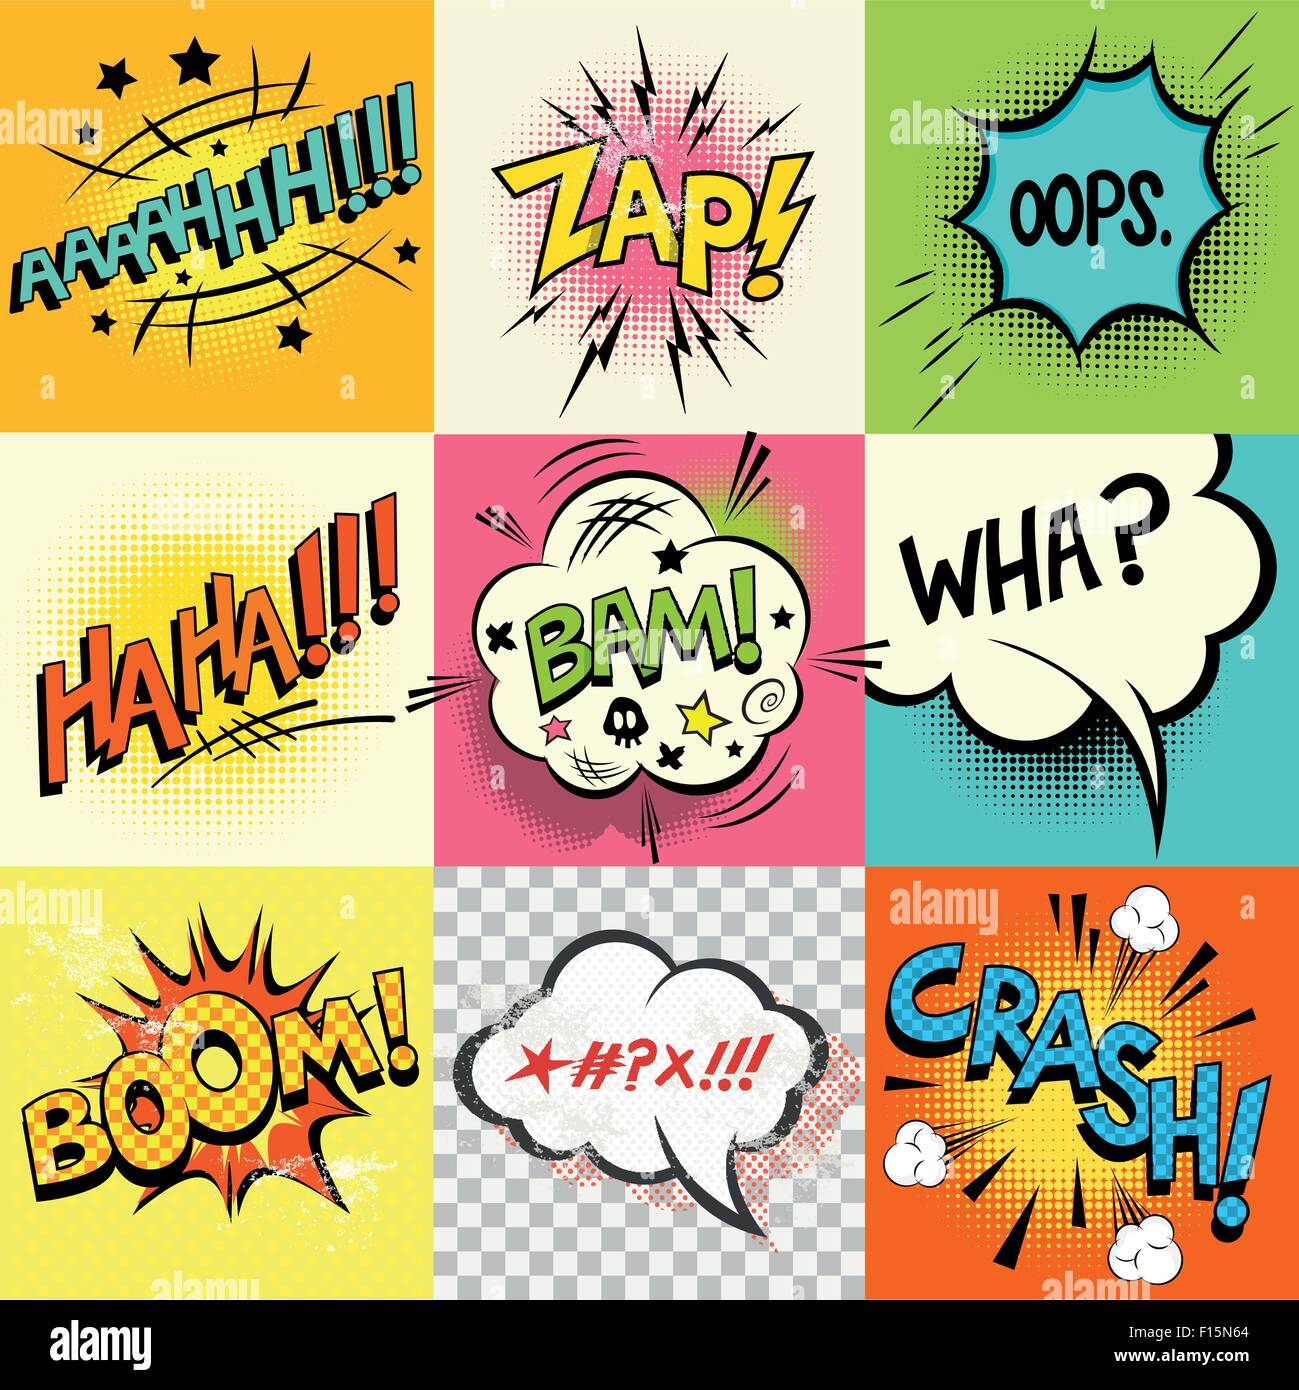 Comic Book Expressions!A set of comic book speech bubbles and expression words. Vector illustration - Stock Image